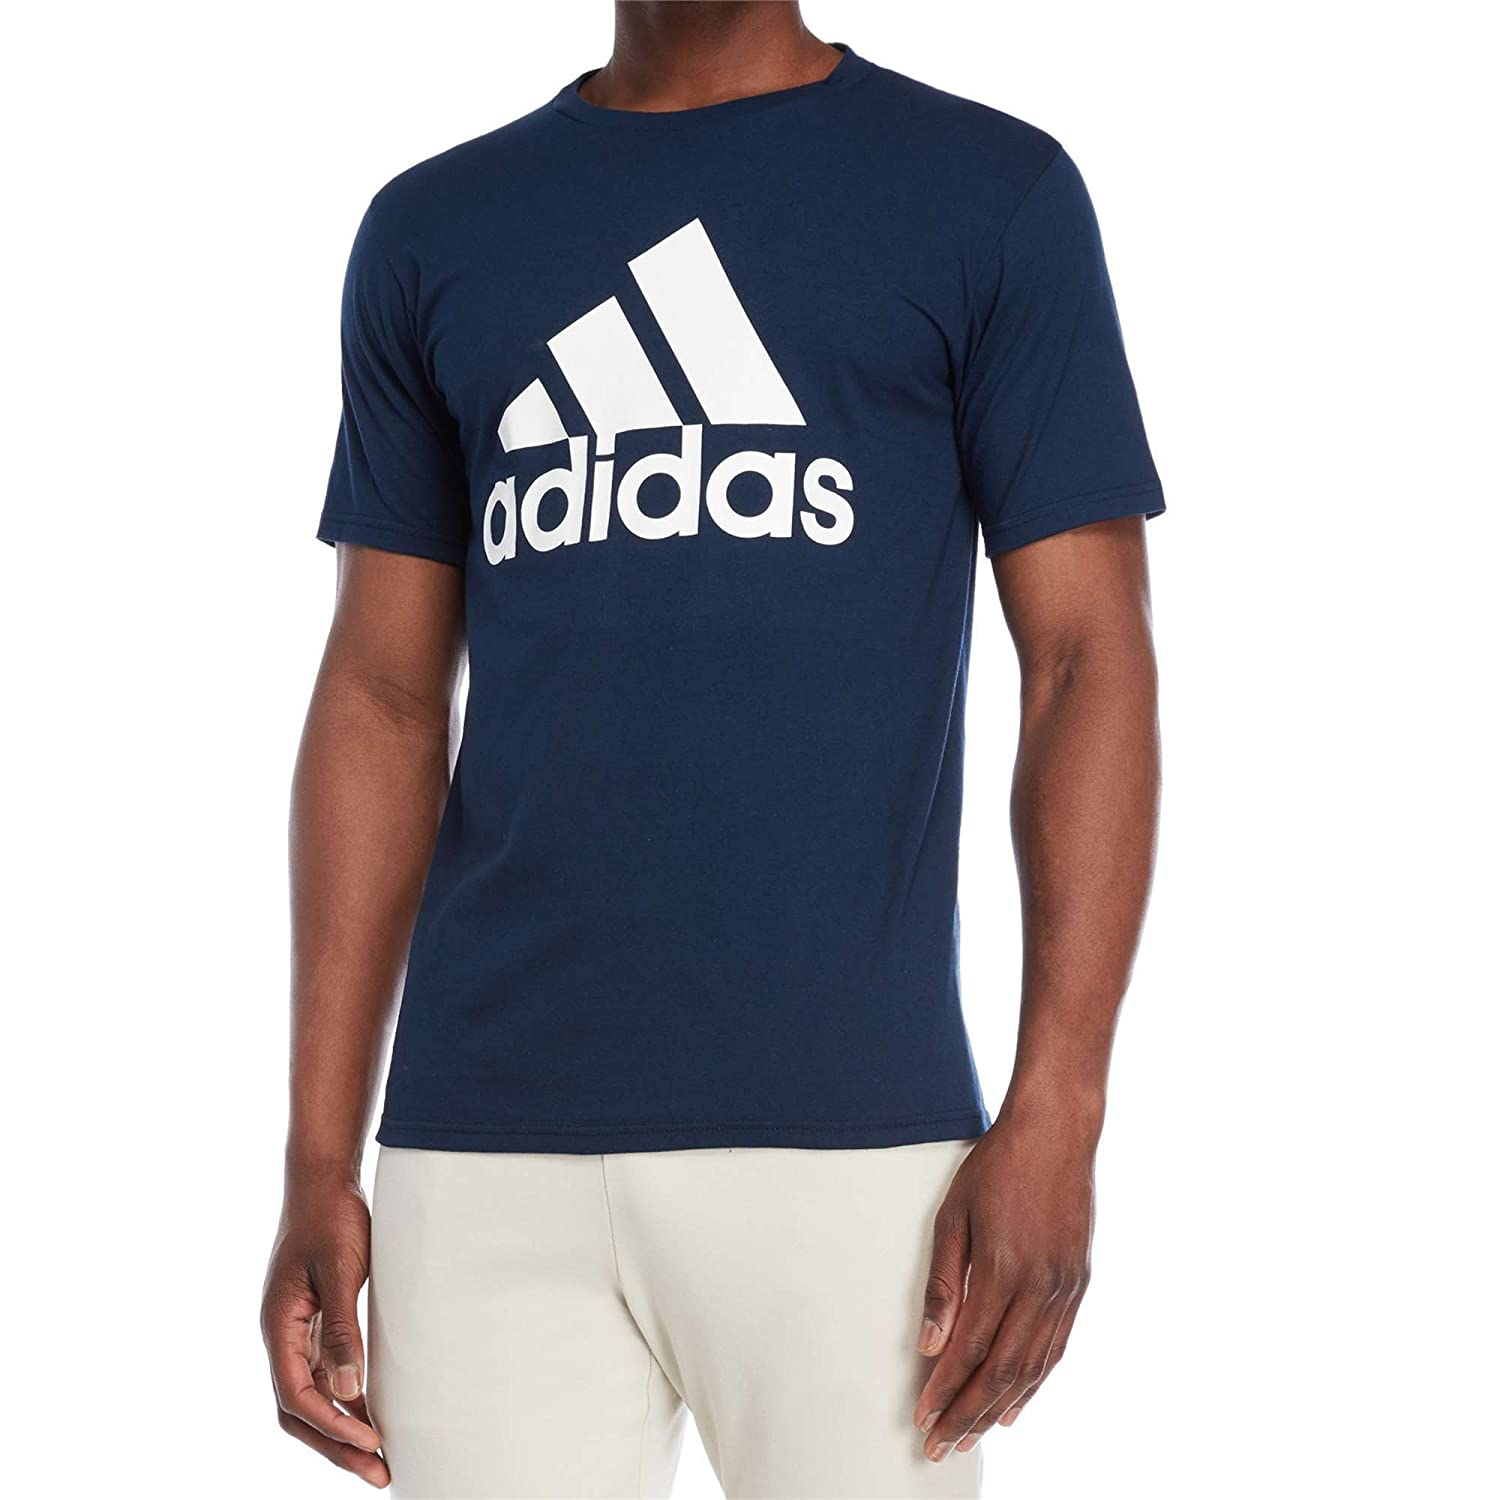 photos officielles 9a228 21882 adidas Men's Logo T-Shirt, Shirts & Tees - Amazon Canada